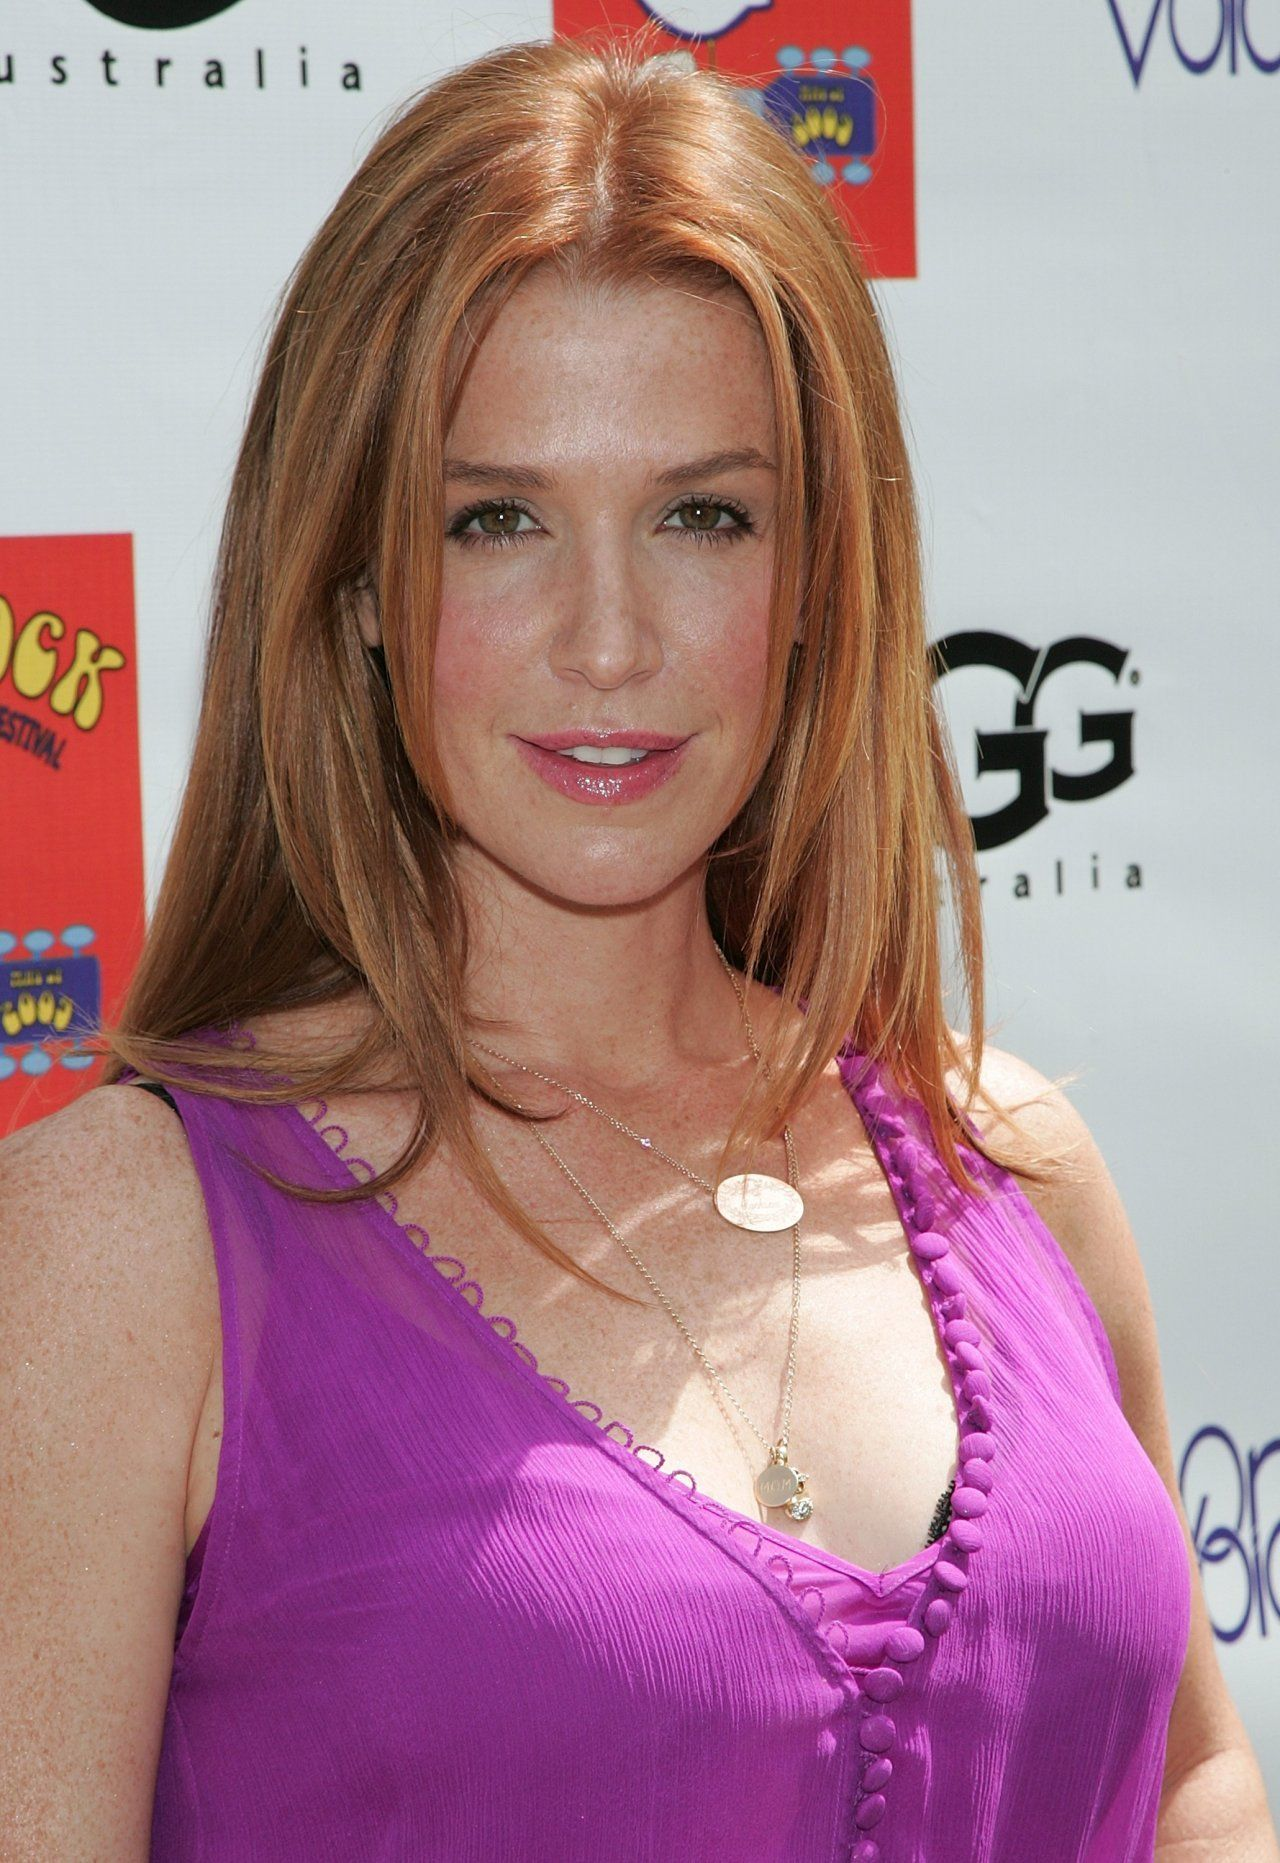 poppy montgomery fansite